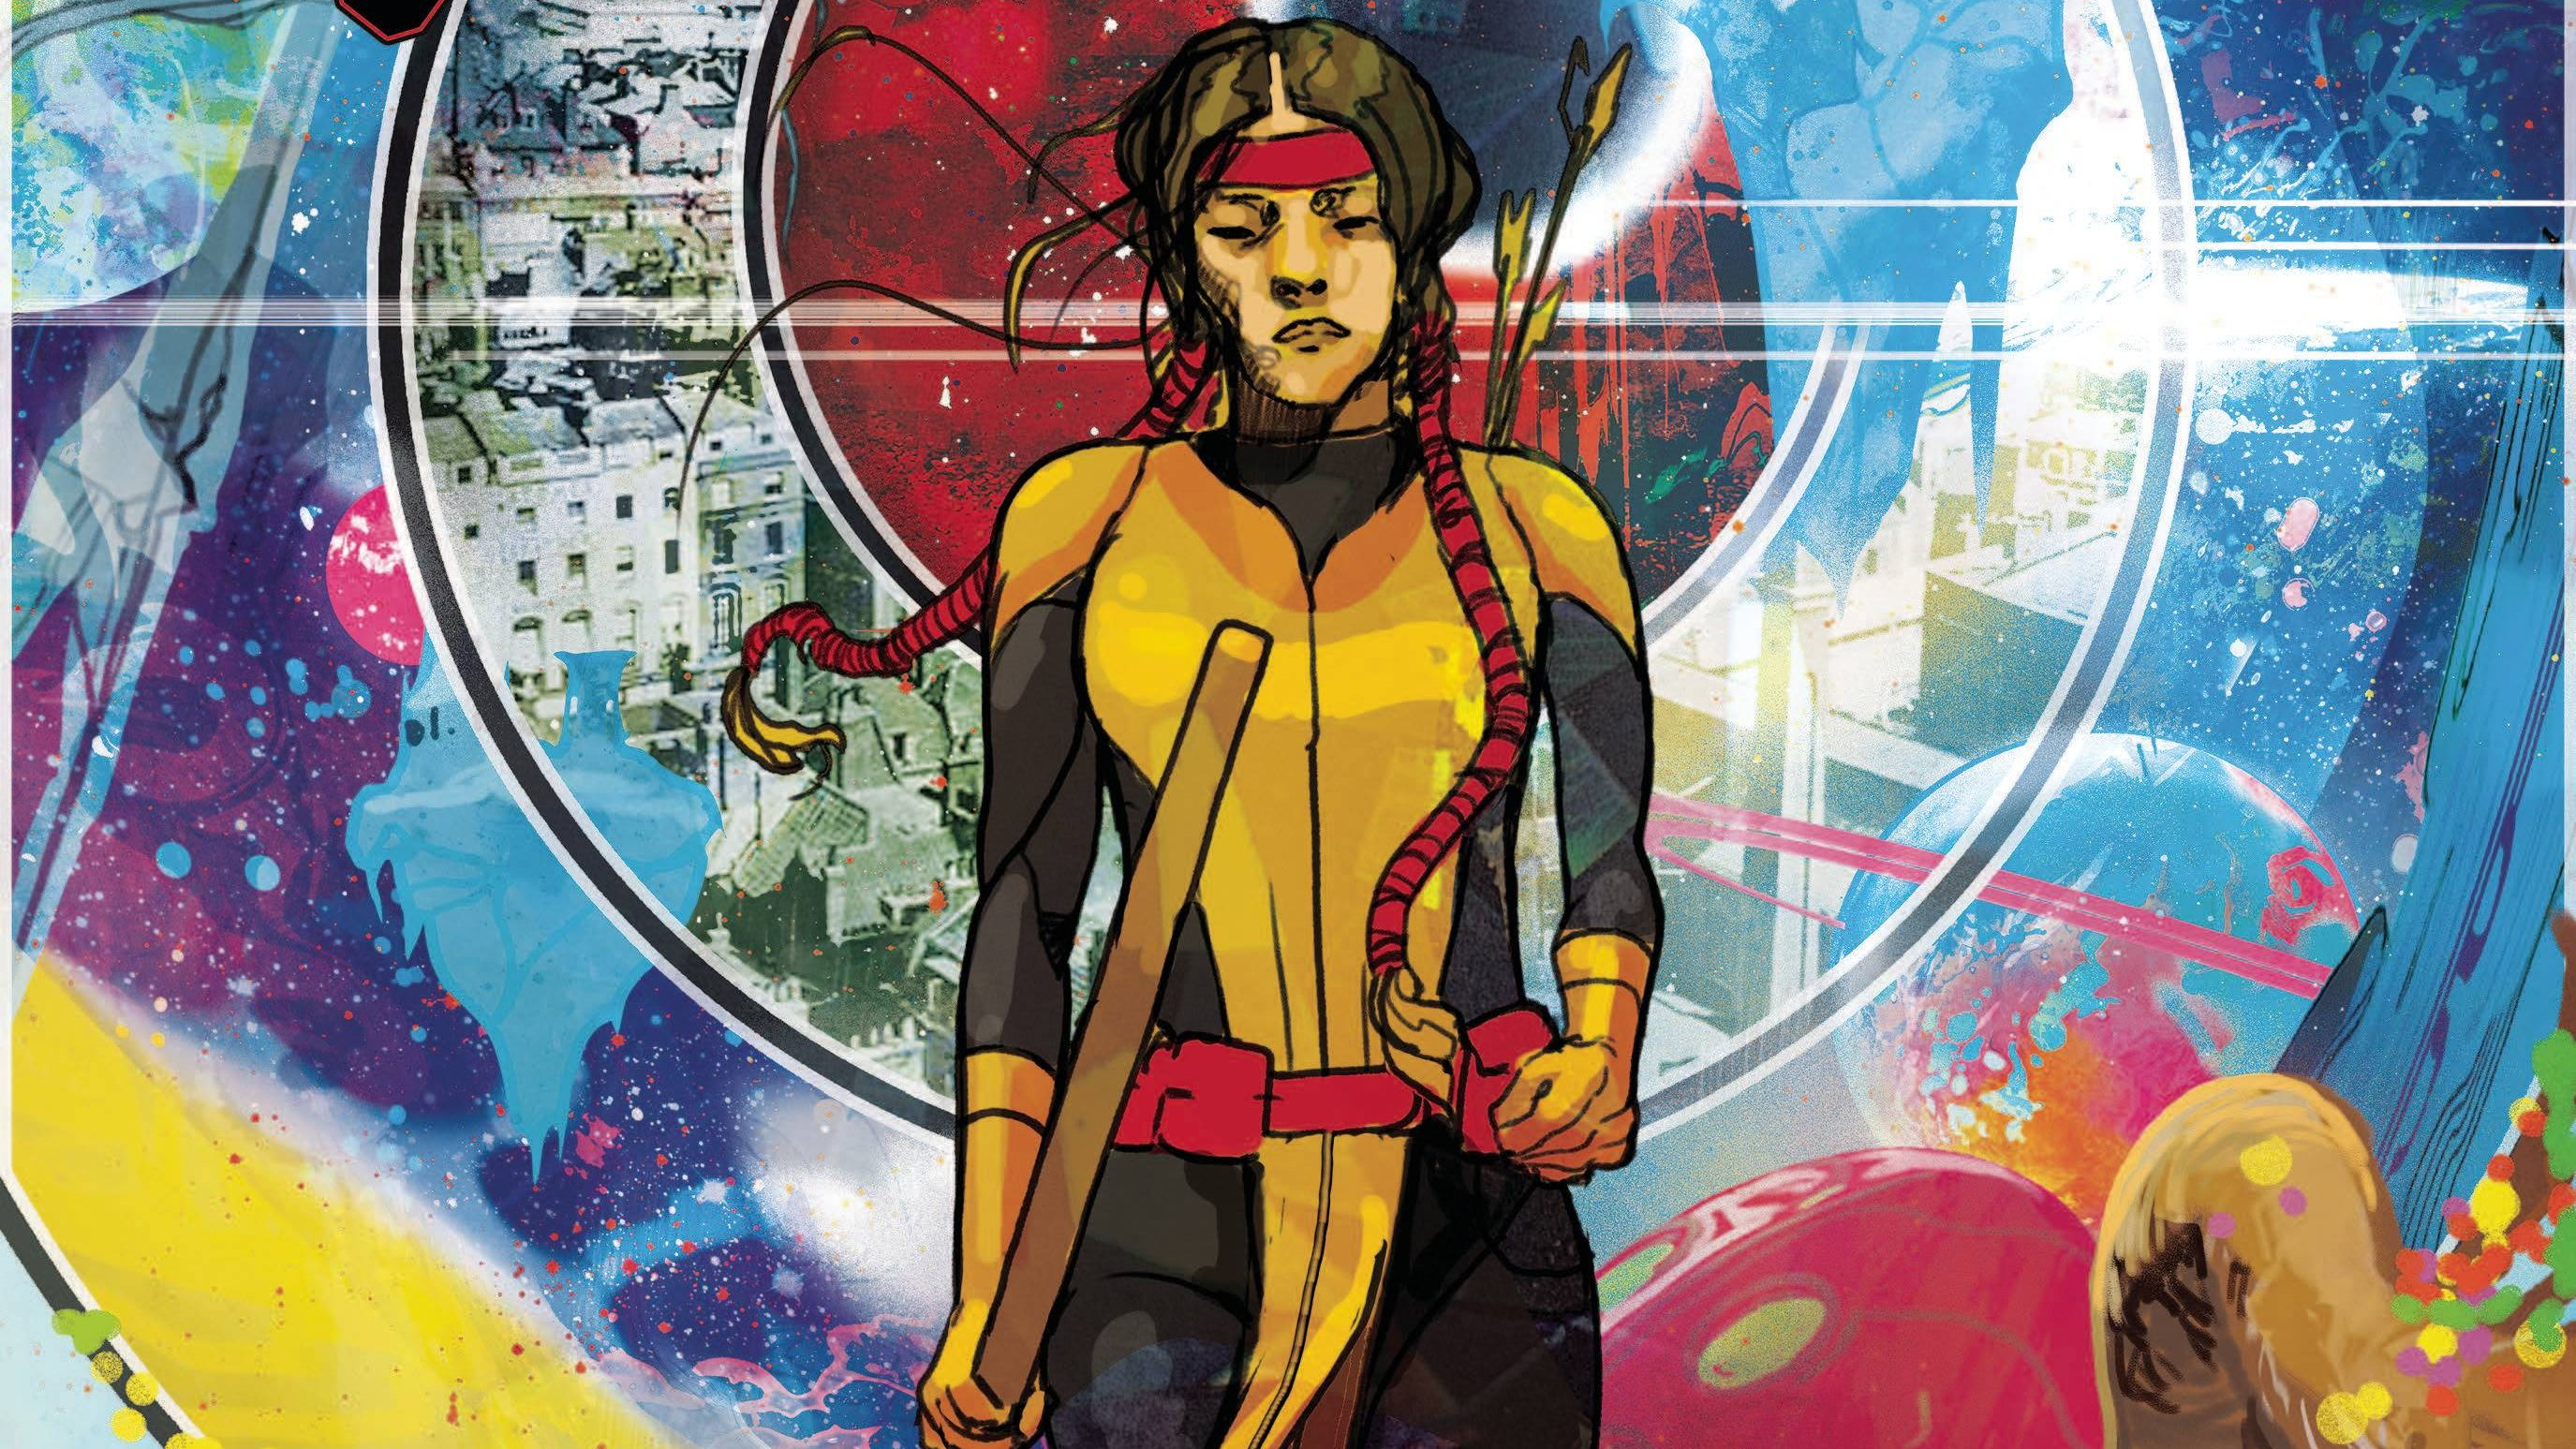 Mirage has come to kick butt and chew bubble gum in New Mutants #17.